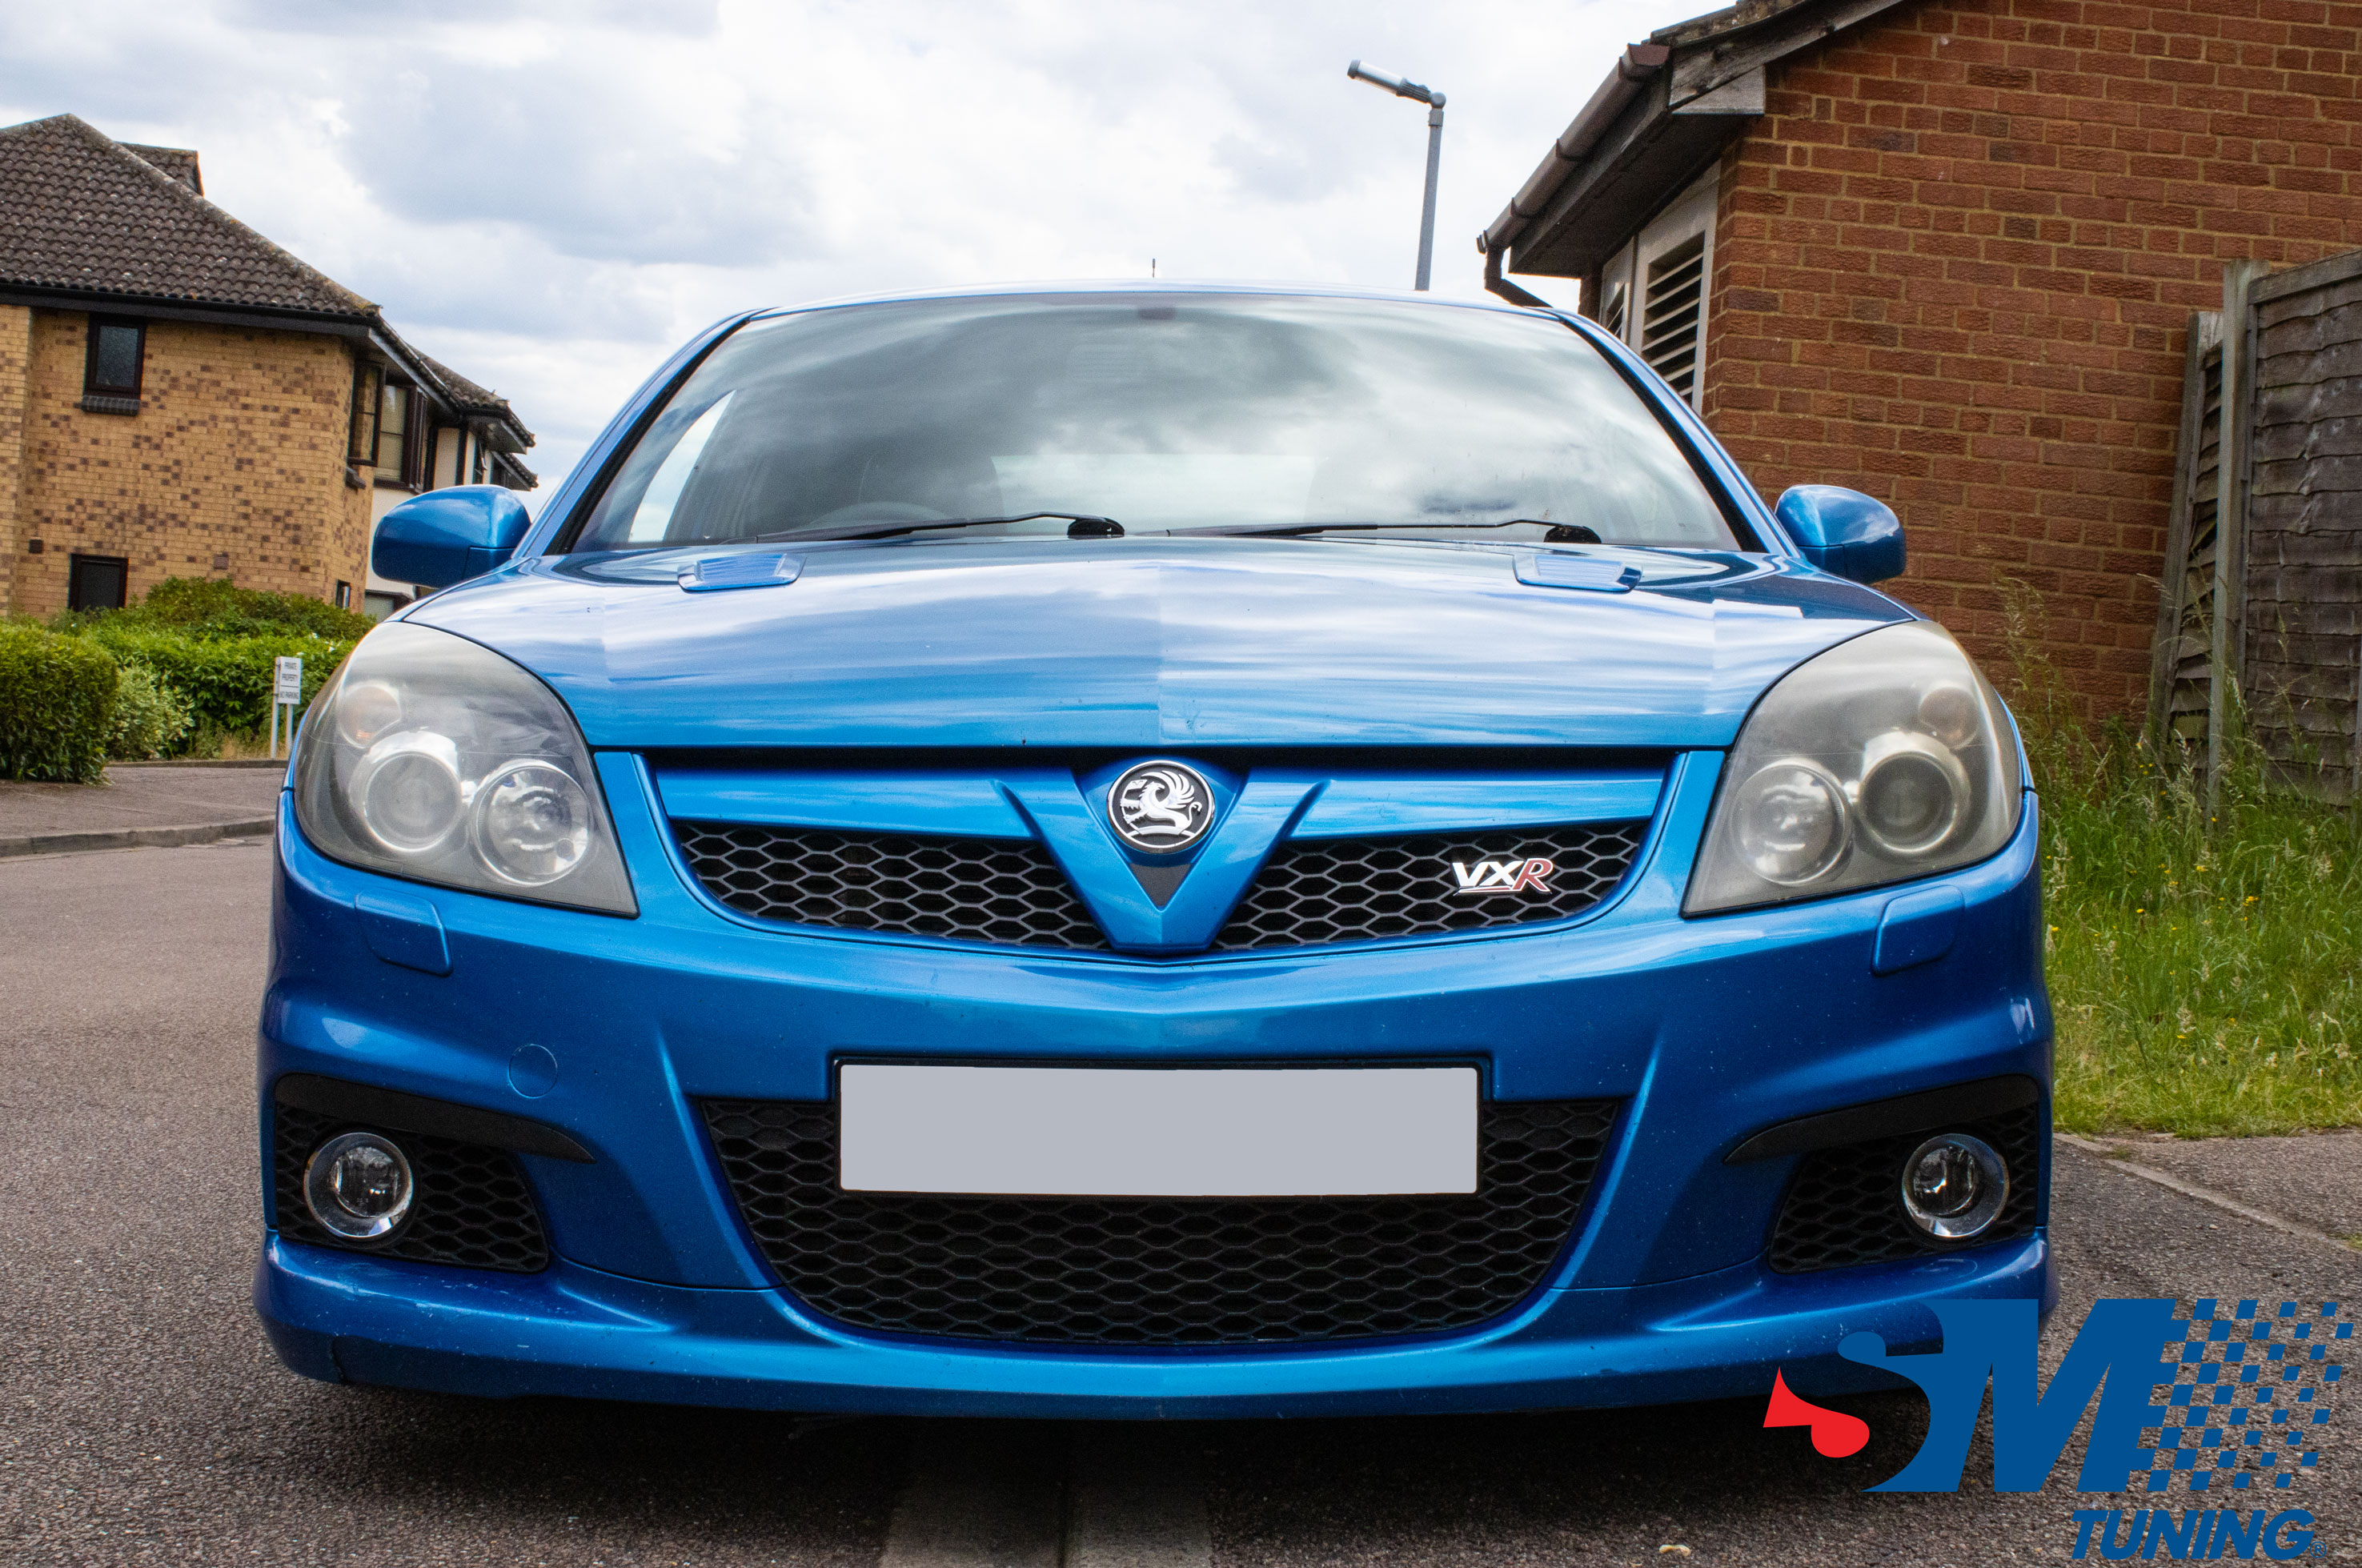 Vauxhall Vectra VXR tuned in Sandy, Bedfordshire